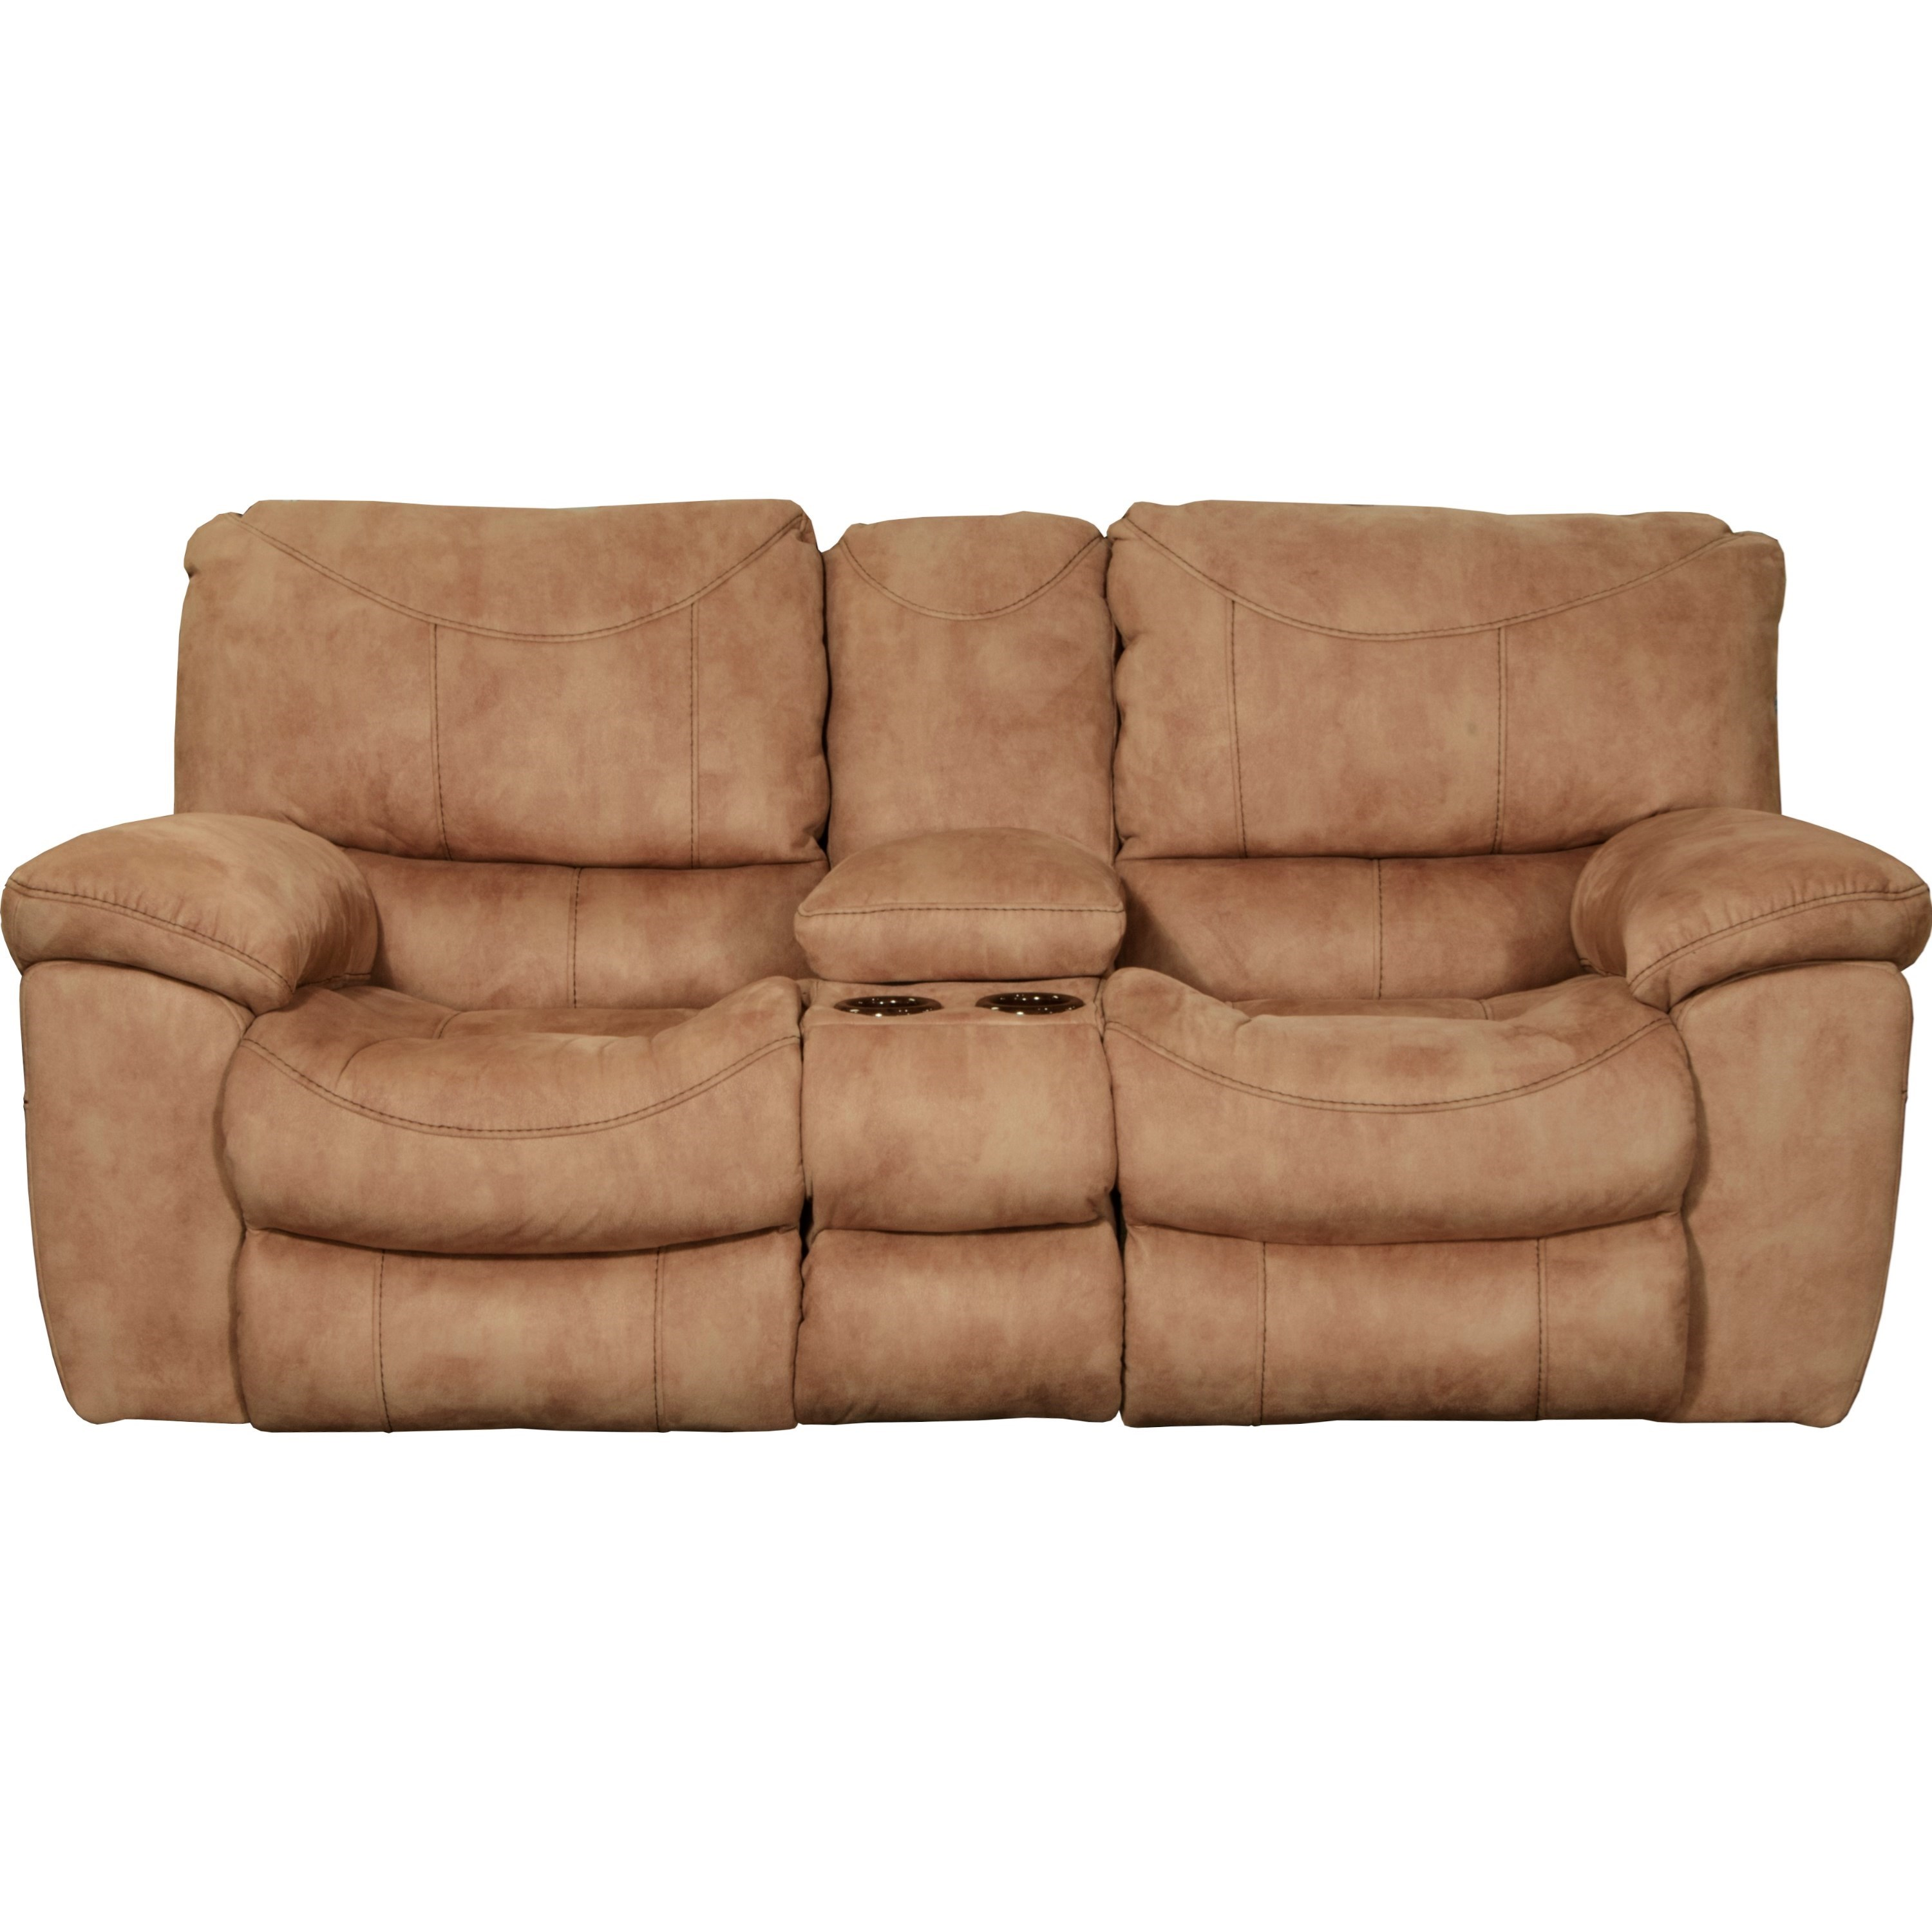 Catnapper Terrance 61589 Power Reclining Loveseat Furniture Superstore Nm Reclining Love Seats